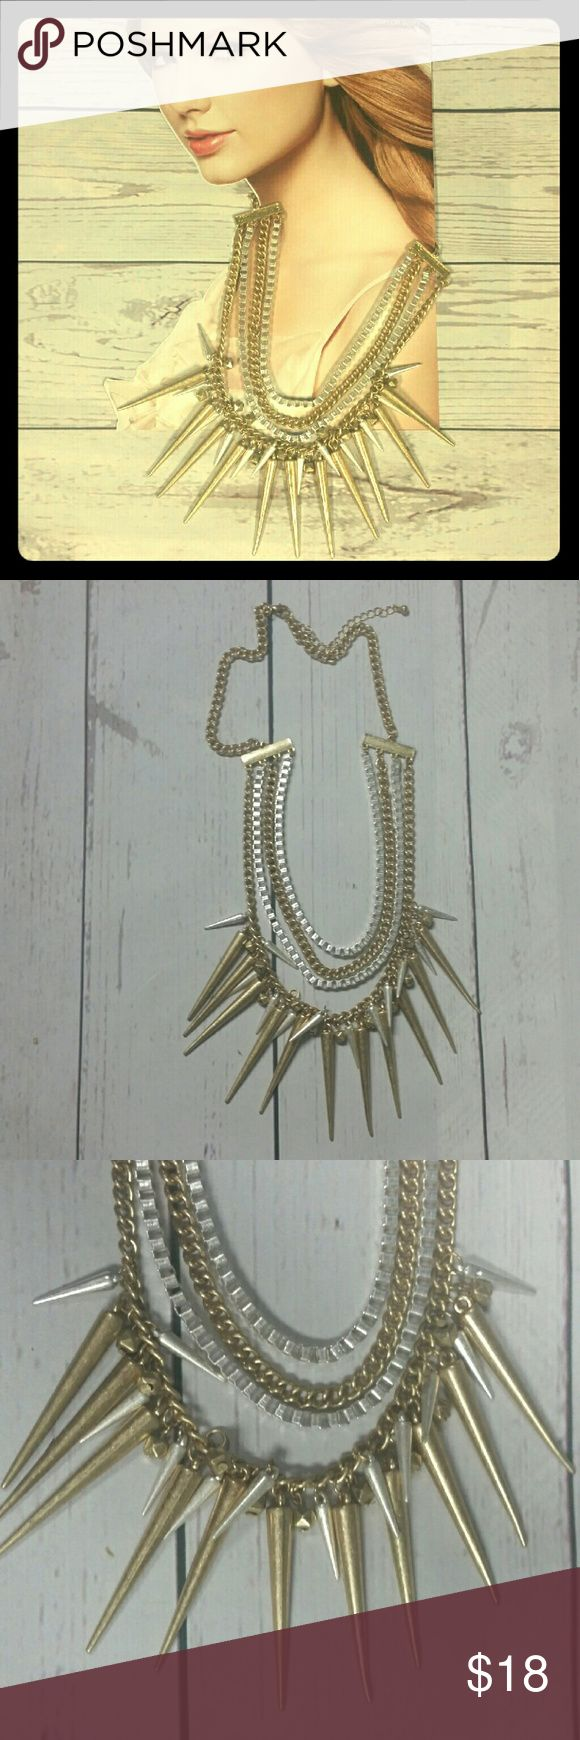 Spiked necklace!!! Give a touch of rock and roll to any outfit with this spiked necklace. Spiked gold and silver color necklace. Never worn. Jewelry Necklaces